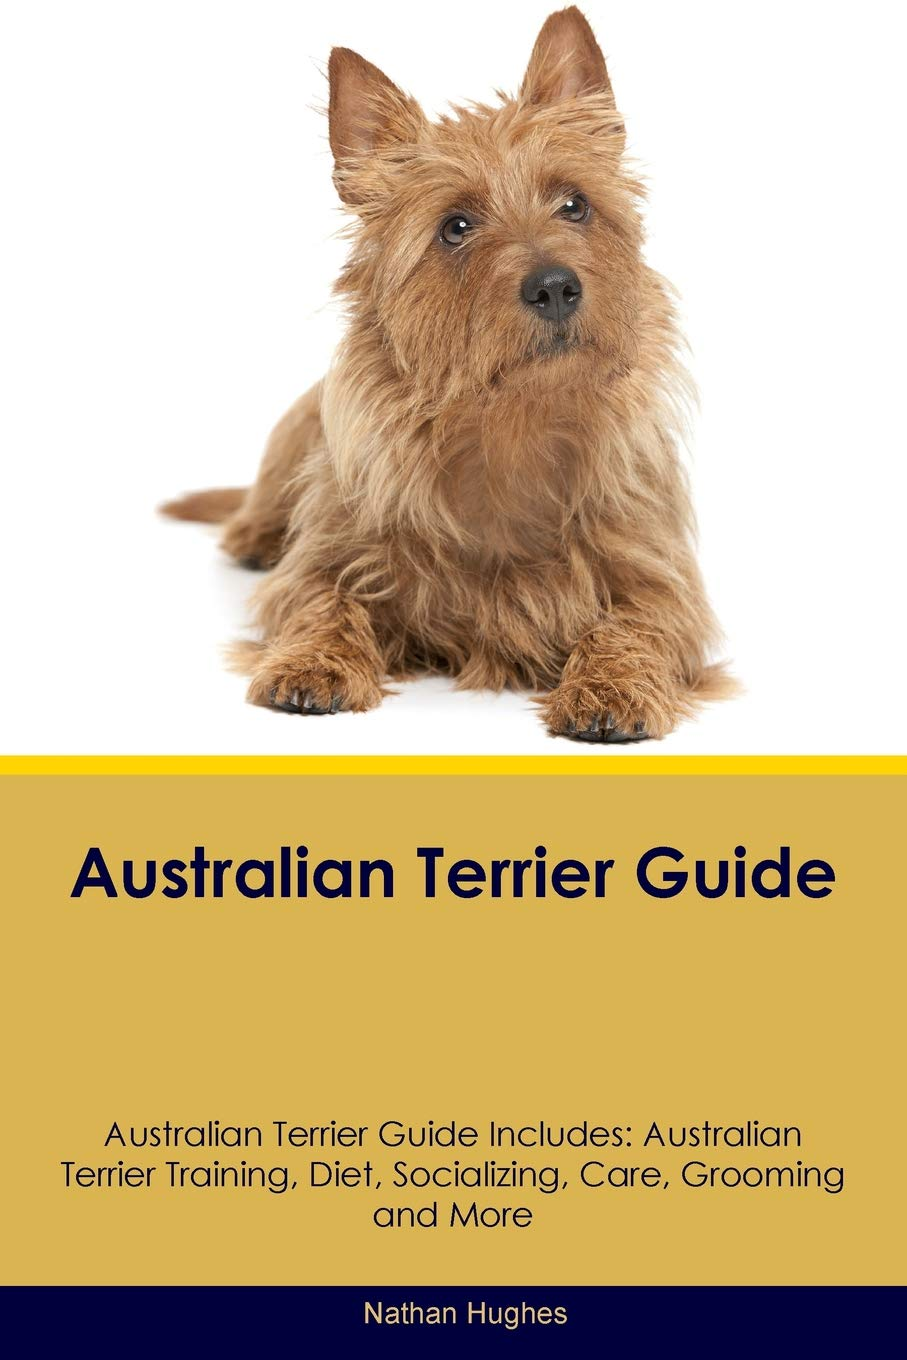 Australian Terrier Guide Australian Terrier Guide Includes: Australian Terrier Training, Diet, Socializing, Care, Grooming, Breeding and More